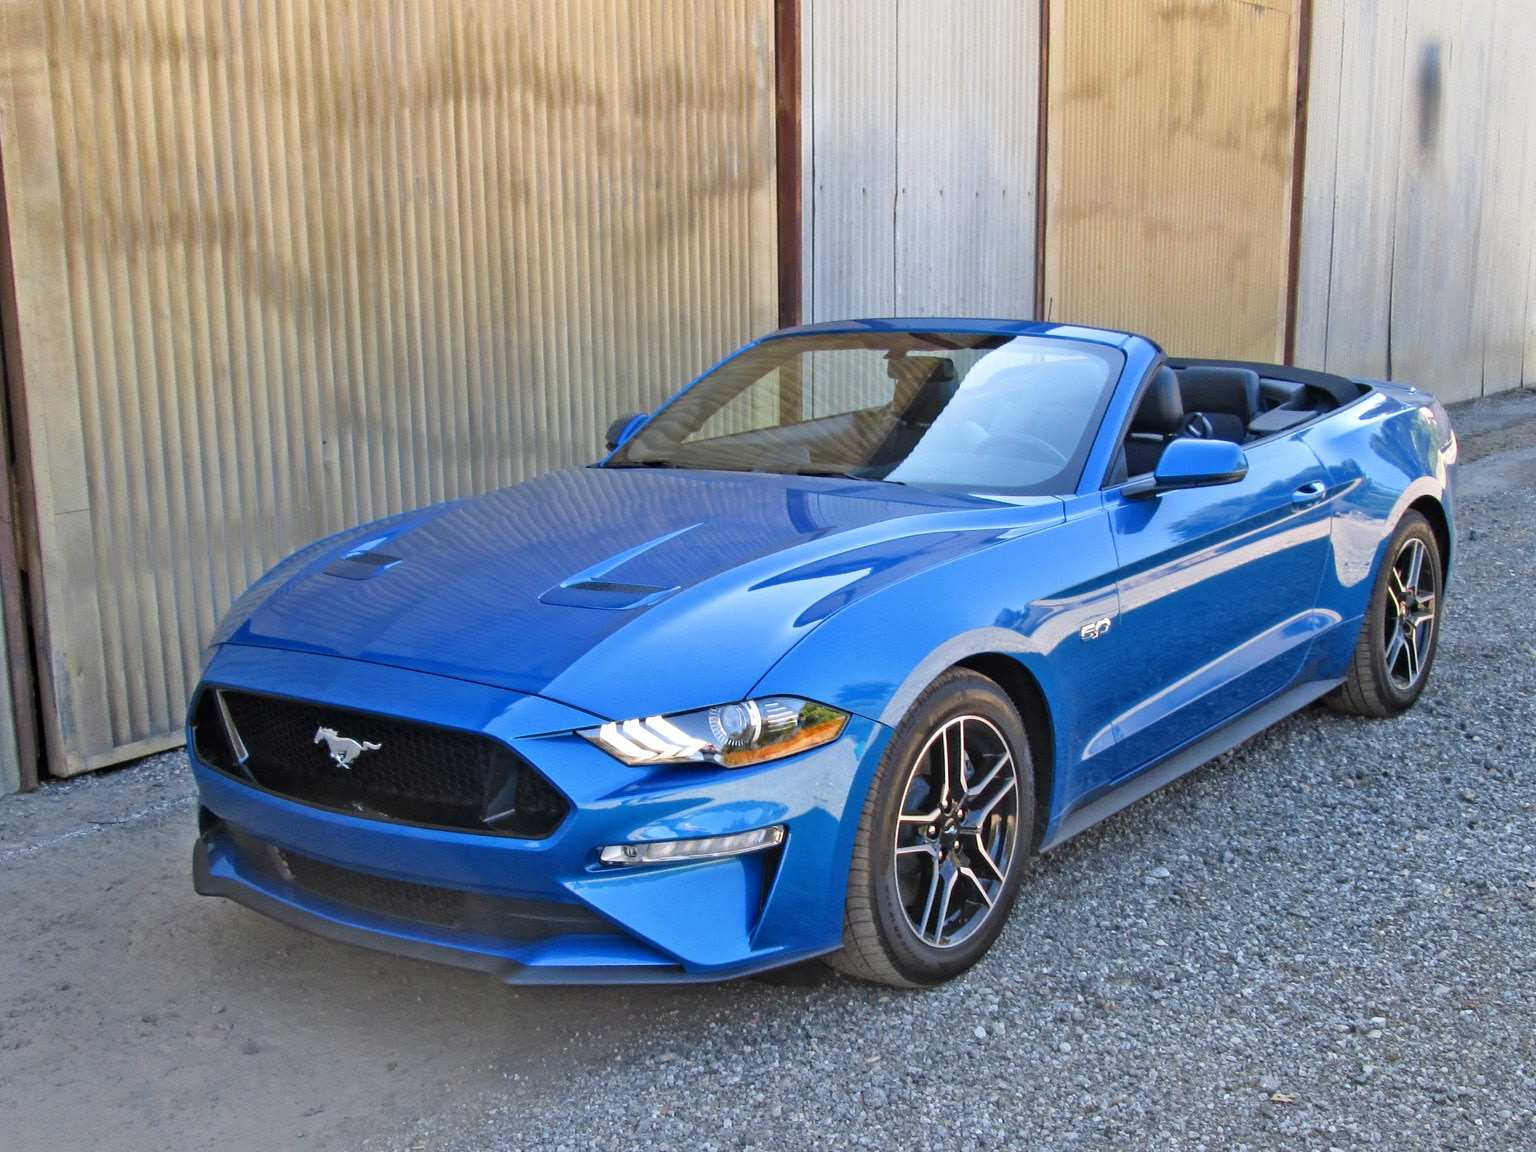 81 Best Review 2019 Ford Mustang Gt Premium Images by 2019 Ford Mustang Gt Premium